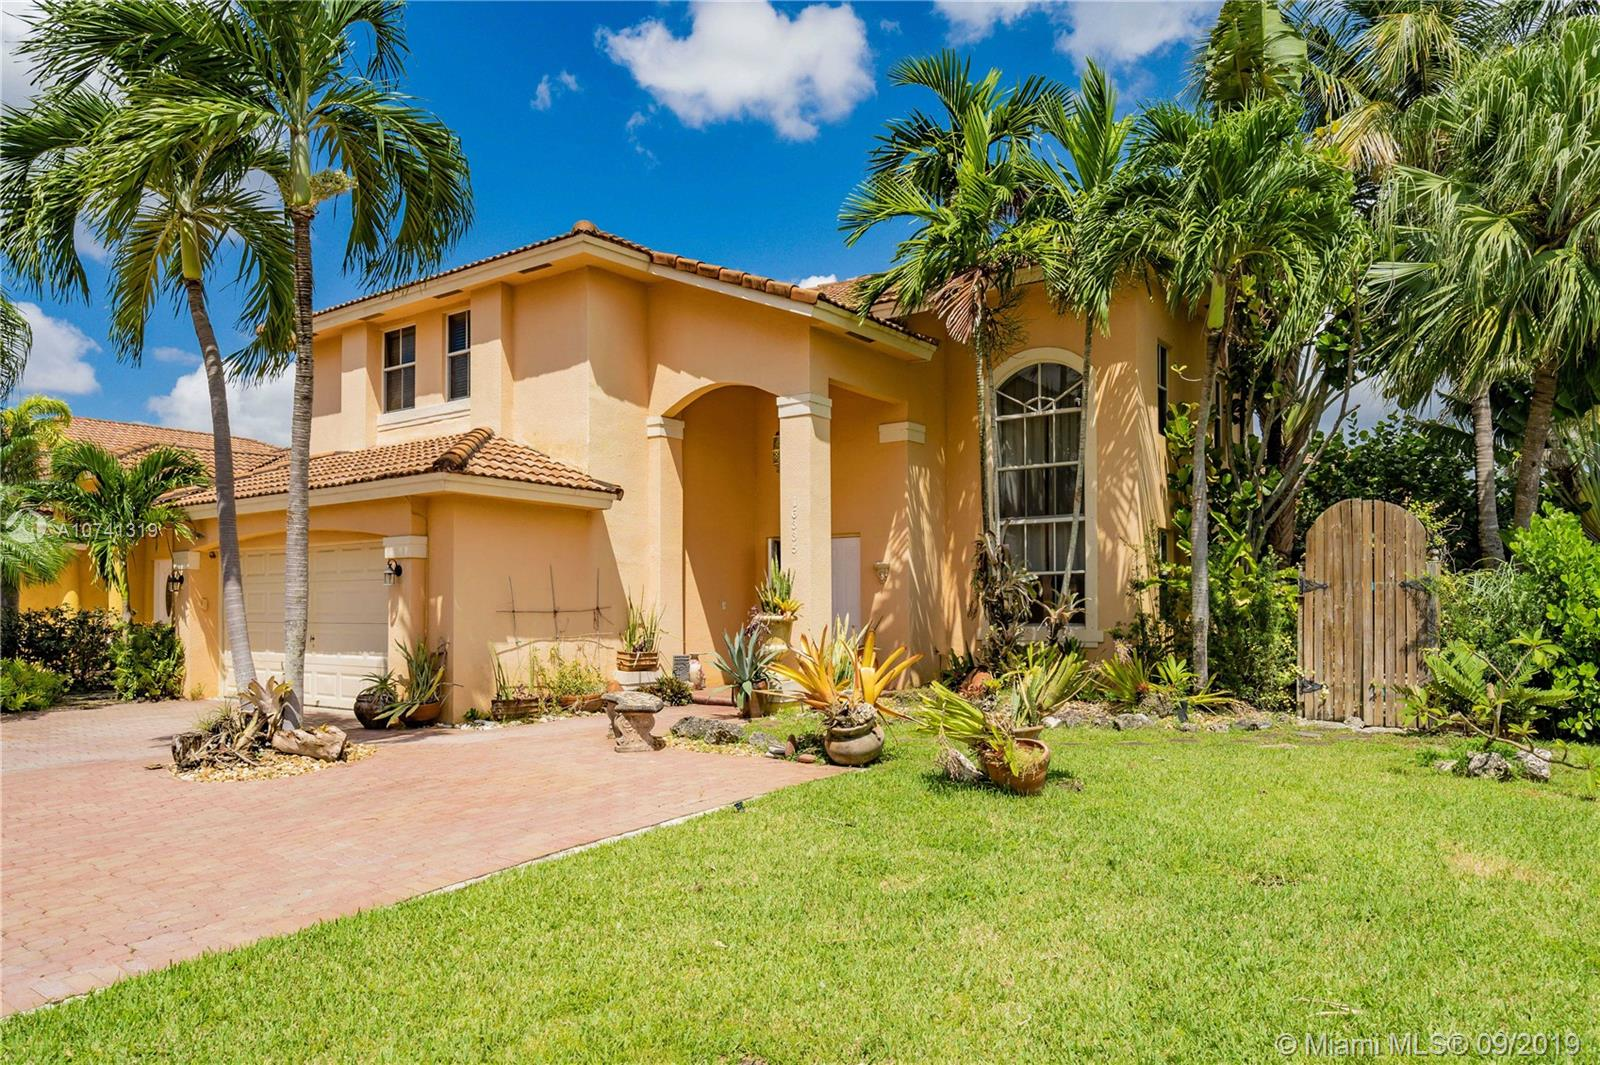 16335 SW 95th Ln, Kendall in Miami-dade County County, FL 33196 Home for Sale